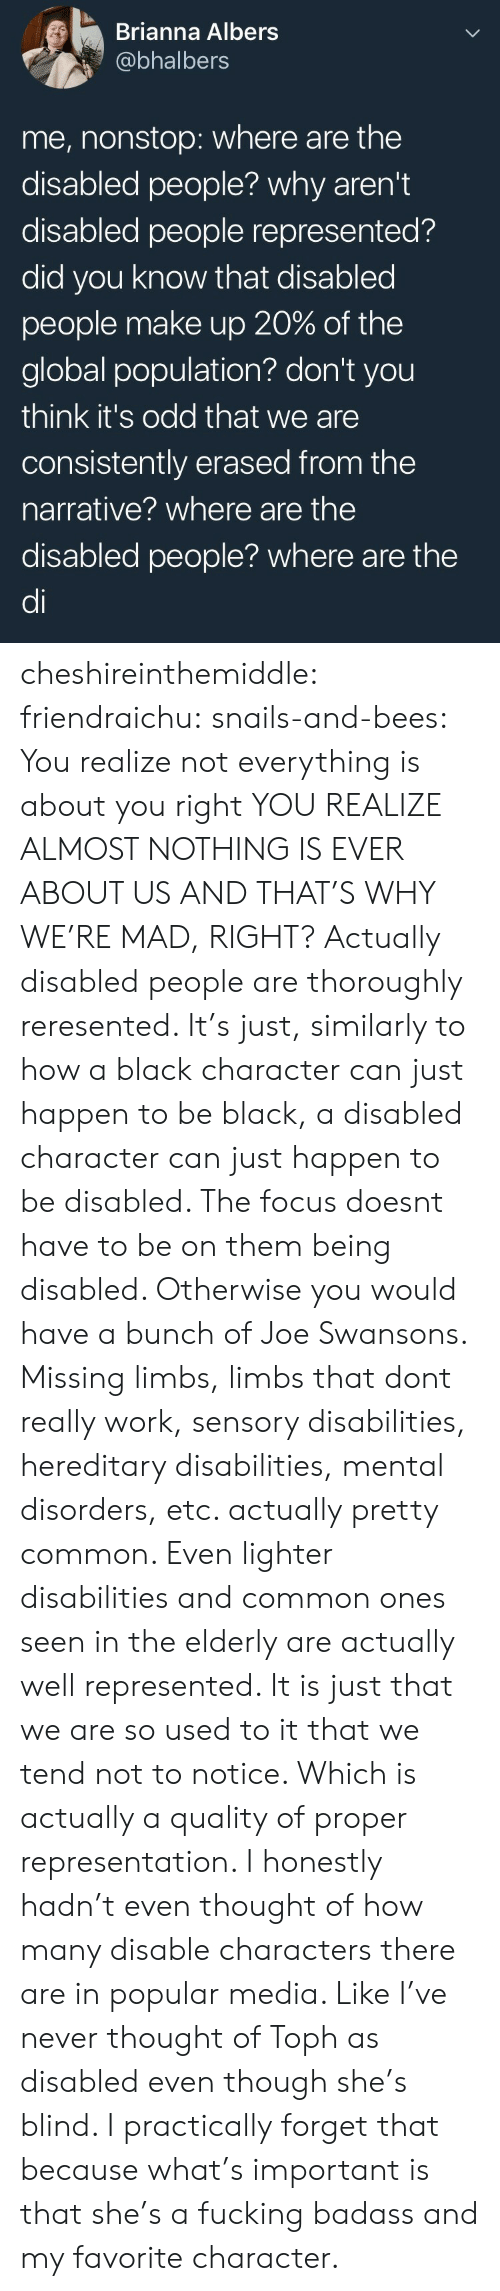 Tumblr, Work, and Black: Brianna Albers  @bhalbers  me, nonstop: where are the  disabled people? why aren't  disabled people represented?  did you know that disabled  people make up 20% of the  global population? don't you  think it's odd that we are  consistently erased from the  narrative? where are the  disabled people? where are the  di cheshireinthemiddle:  friendraichu:  snails-and-bees:  You realize not everything is about you right  YOU REALIZE ALMOST NOTHING IS EVER ABOUT US AND THAT'S WHY WE'RE MAD, RIGHT?  Actually disabled people are thoroughly reresented. It's just, similarly to how a black character can just happen to be black, a disabled character can just happen to be disabled. The focus doesnt have to be on them being disabled. Otherwise you would have a bunch of Joe Swansons. Missing limbs, limbs that dont really work, sensory disabilities, hereditary disabilities, mental disorders, etc. actually pretty common. Even lighter disabilities and common ones seen in the elderly are actually well represented. It is just that we are so used to it that we tend not to notice. Which is actually a quality of proper representation.   I honestly hadn't even thought of how many disable characters there are in popular media. Like I've never thought of Toph as disabled even though she's blind. I practically forget that because what's important is that she's a fucking badass and my favorite character.